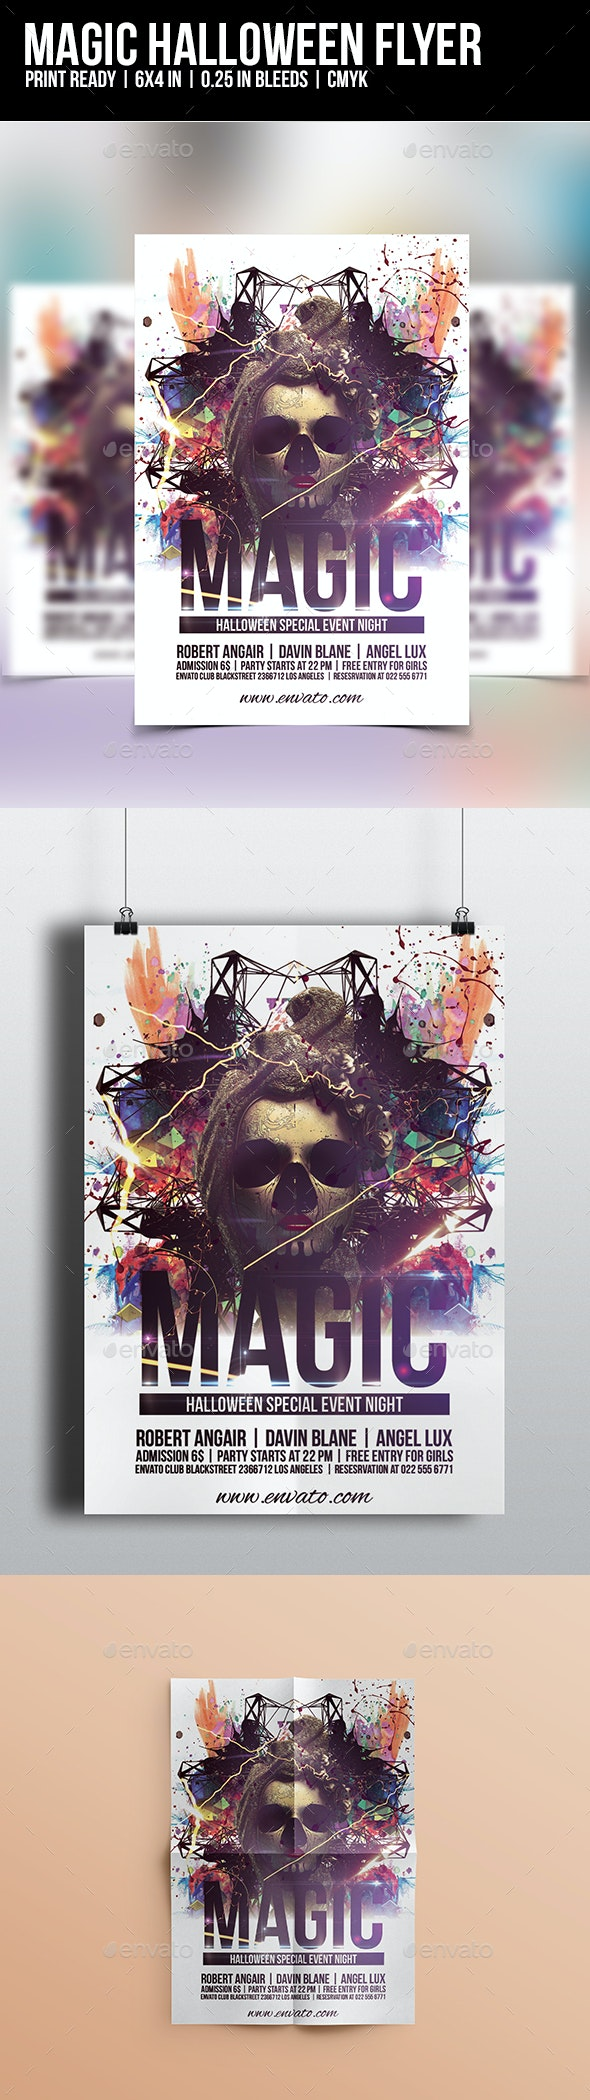 Magic Halloween Flyer Template - Clubs & Parties Events